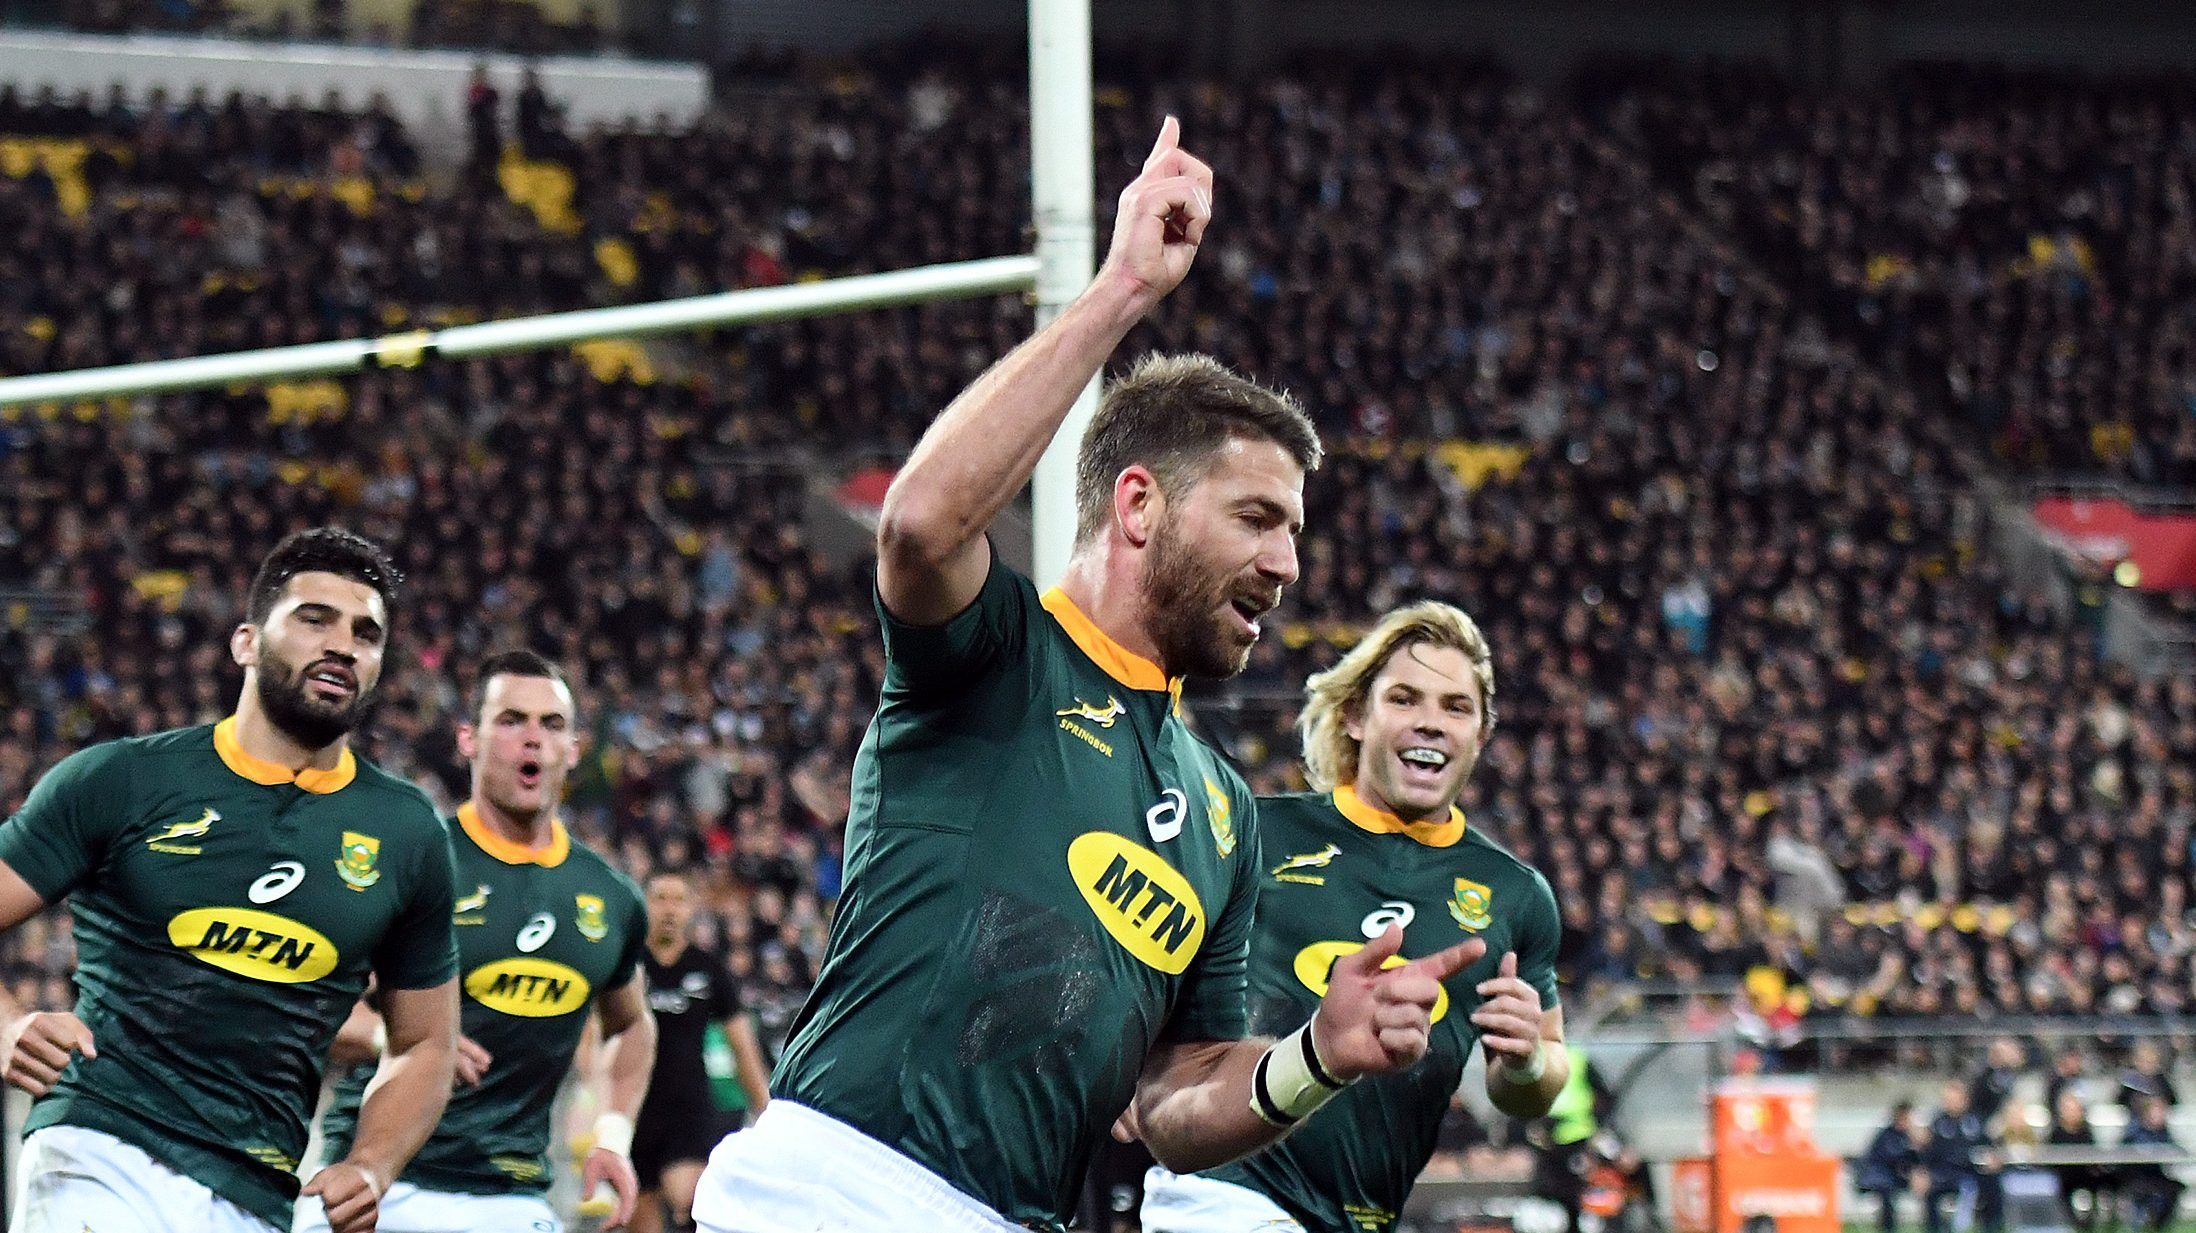 Big picture positive as Springboks enter thrilling three-year cycle